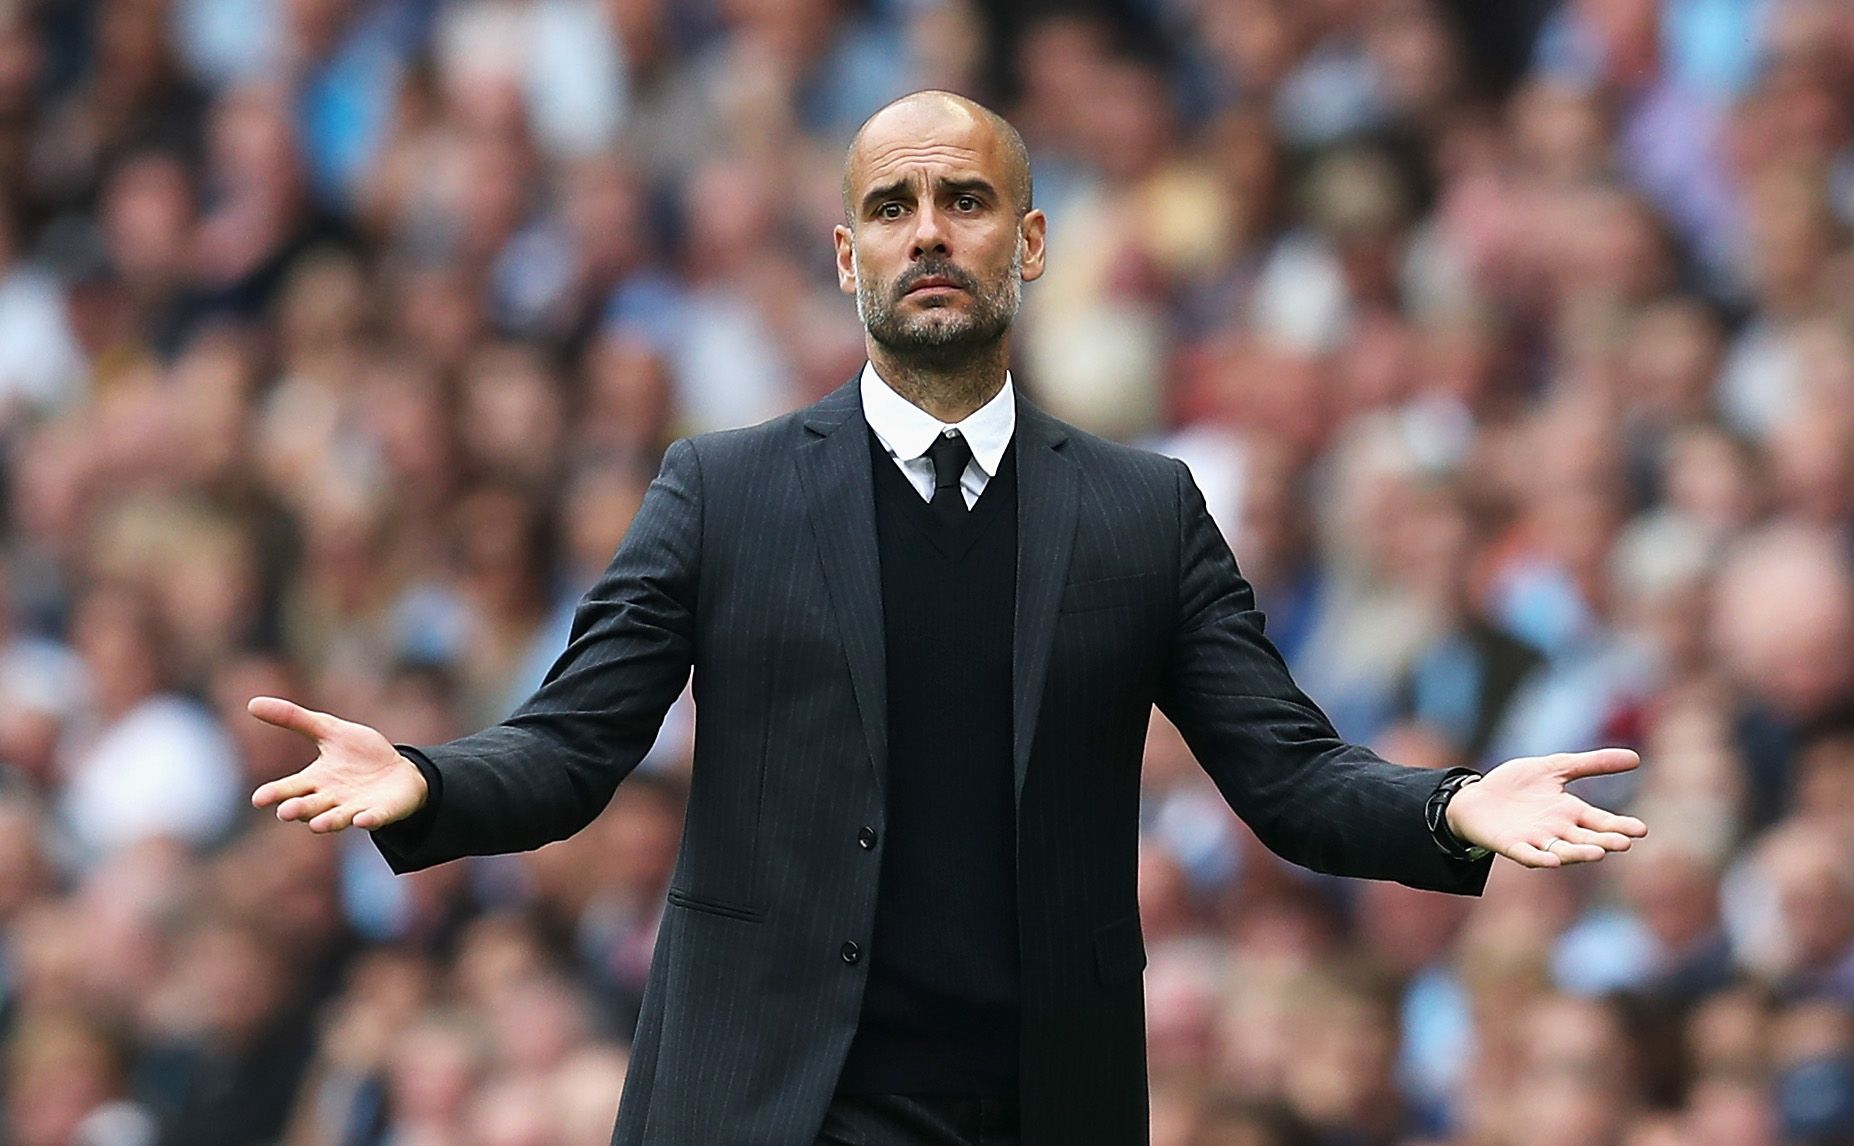 Pep Guardiola Hit With Major Transfer Blow Ahead of Manchester Derby